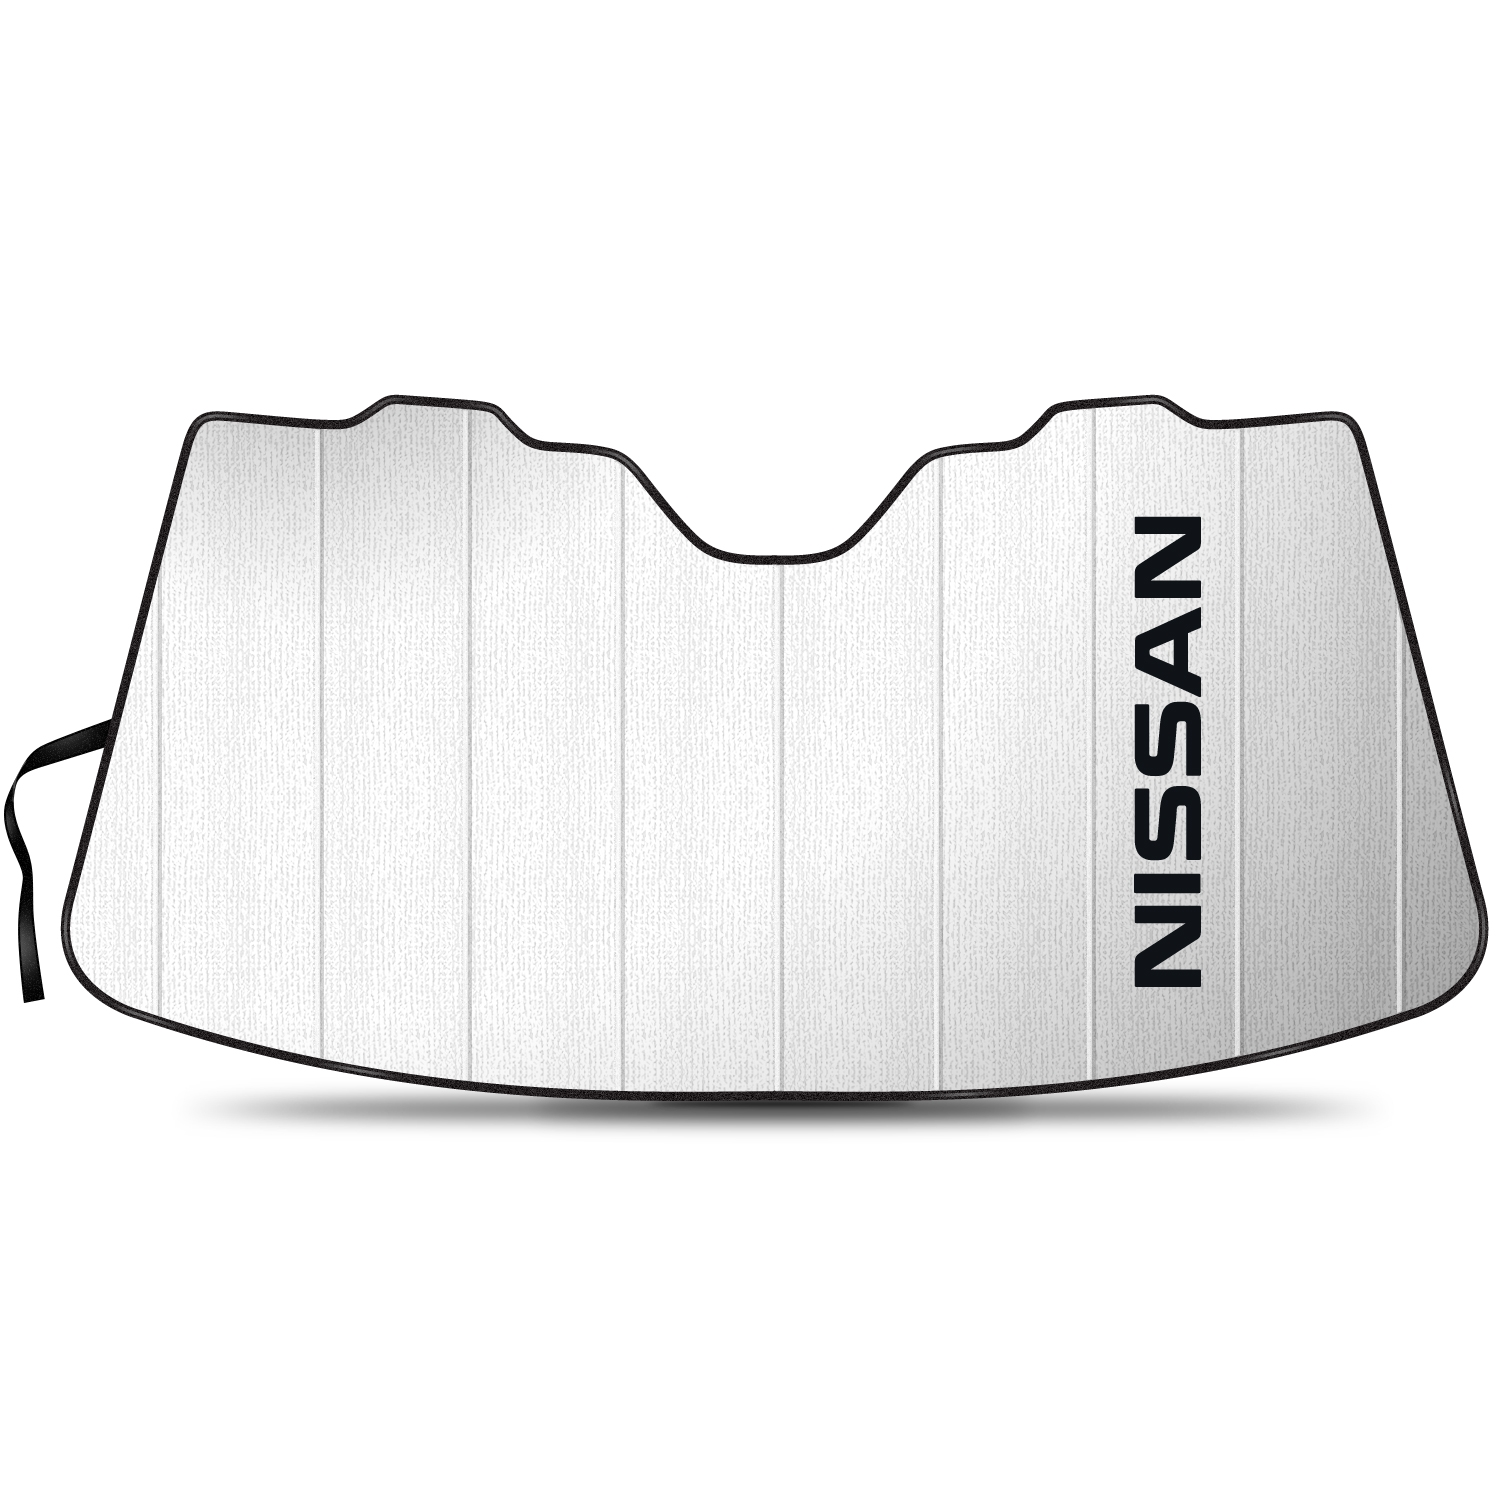 Nissan Stand Up Universal Fit Auto Windshield Sun Shade